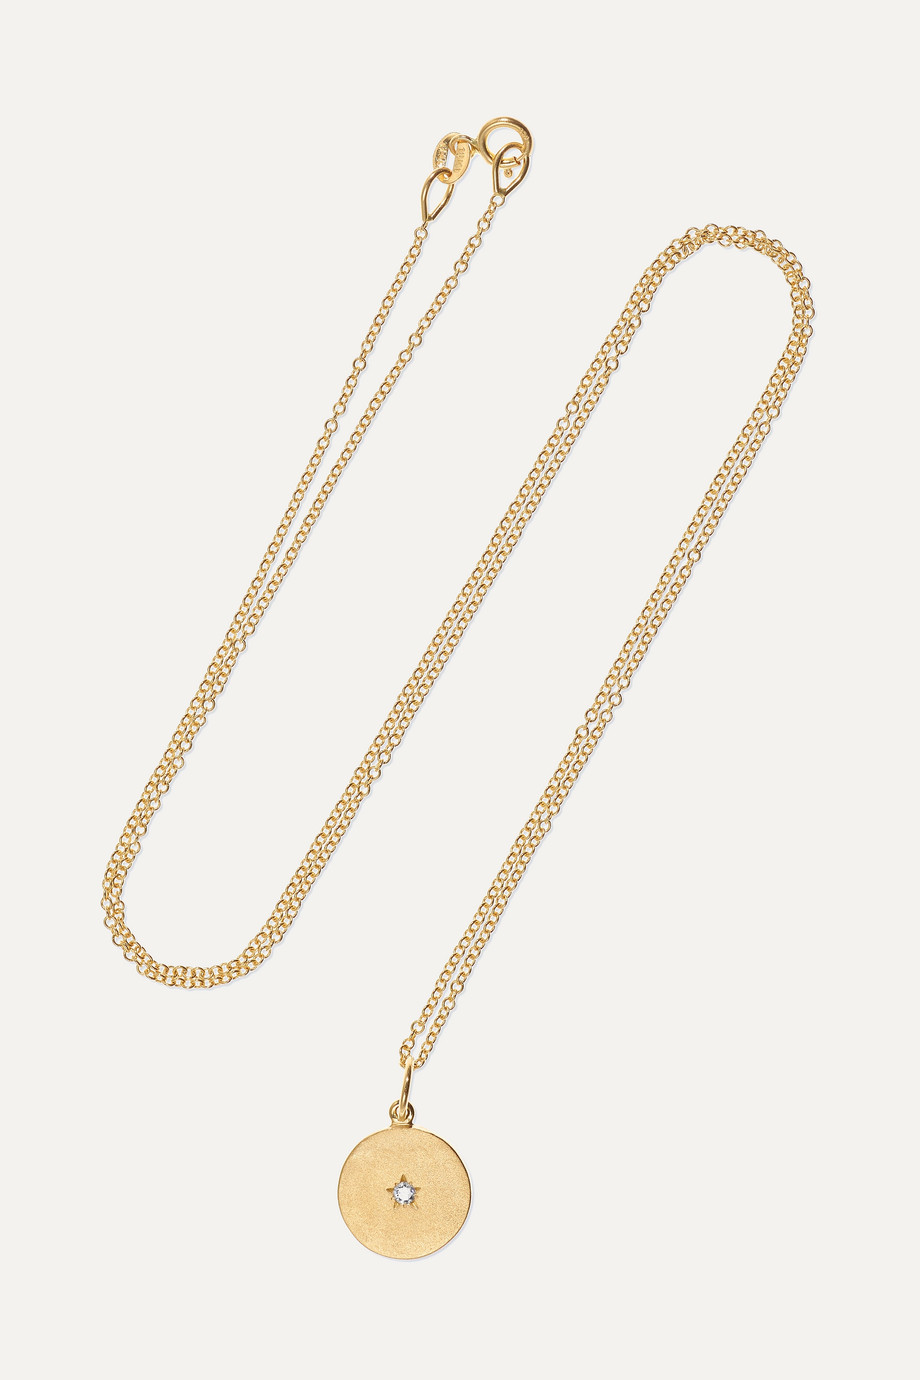 ANDREA FOHRMAN Full/ New Moon 18-karat gold diamond necklace